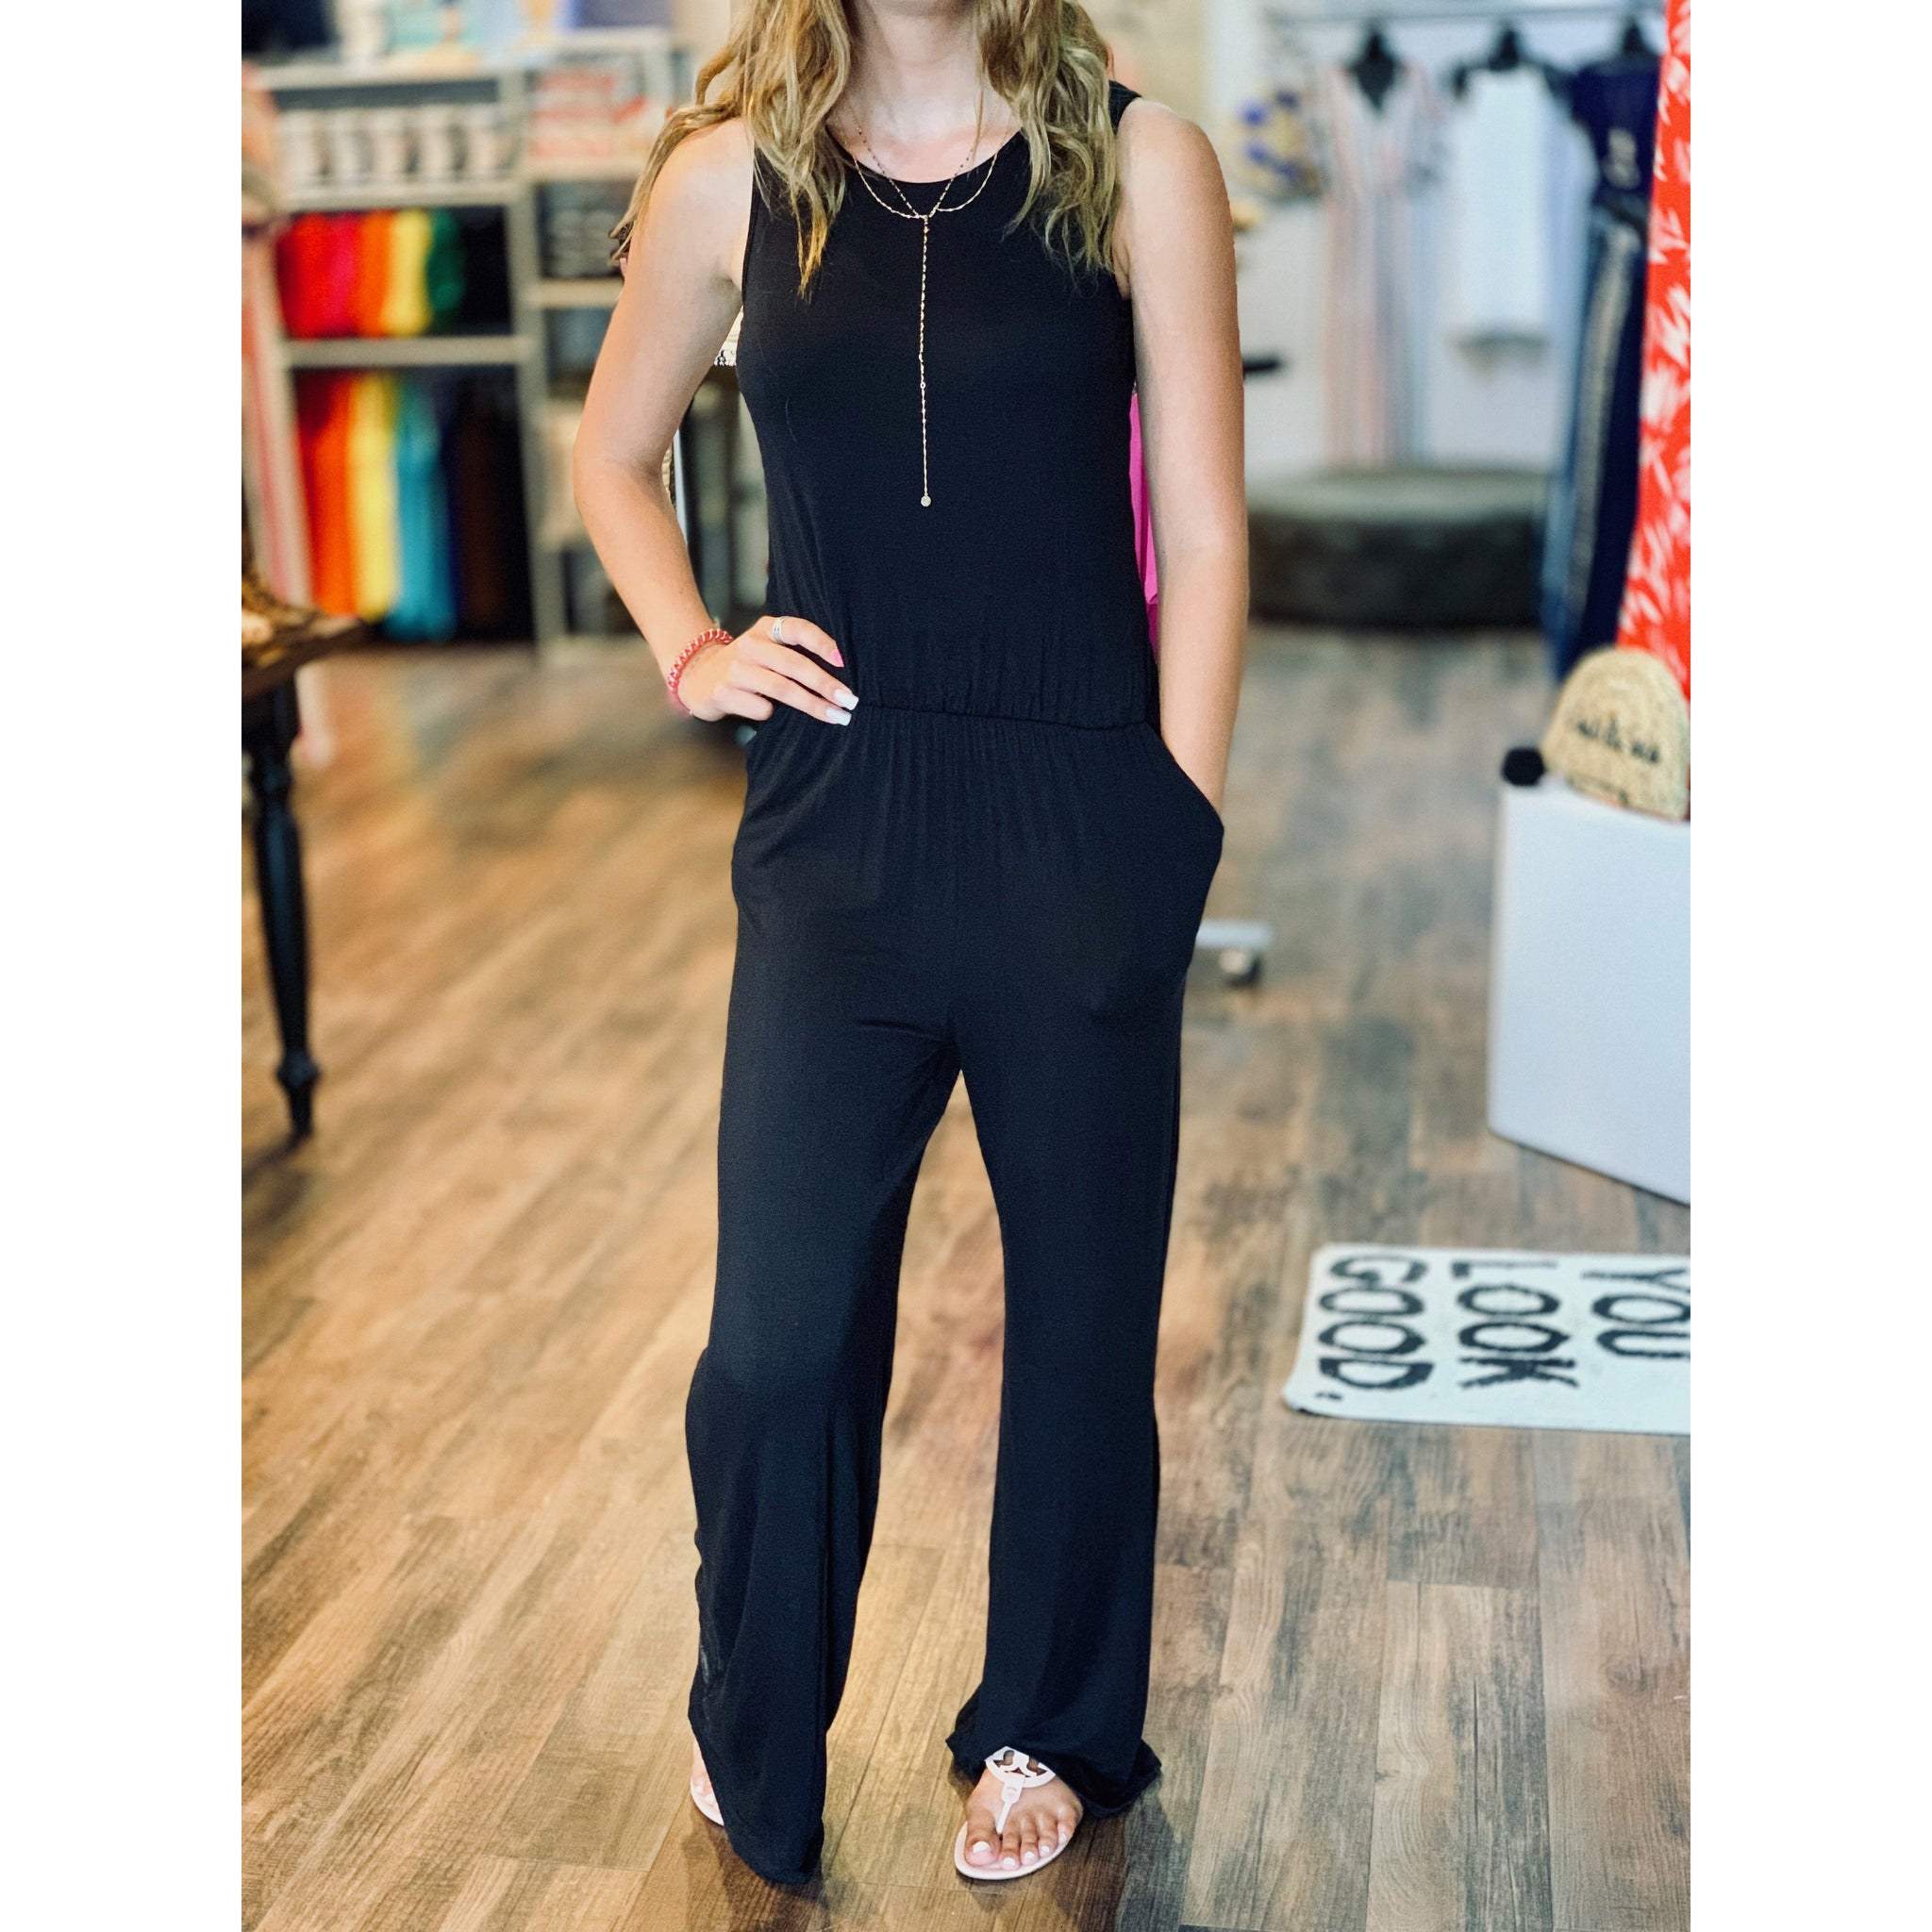 Black Jumpsuit w Key Hole Back